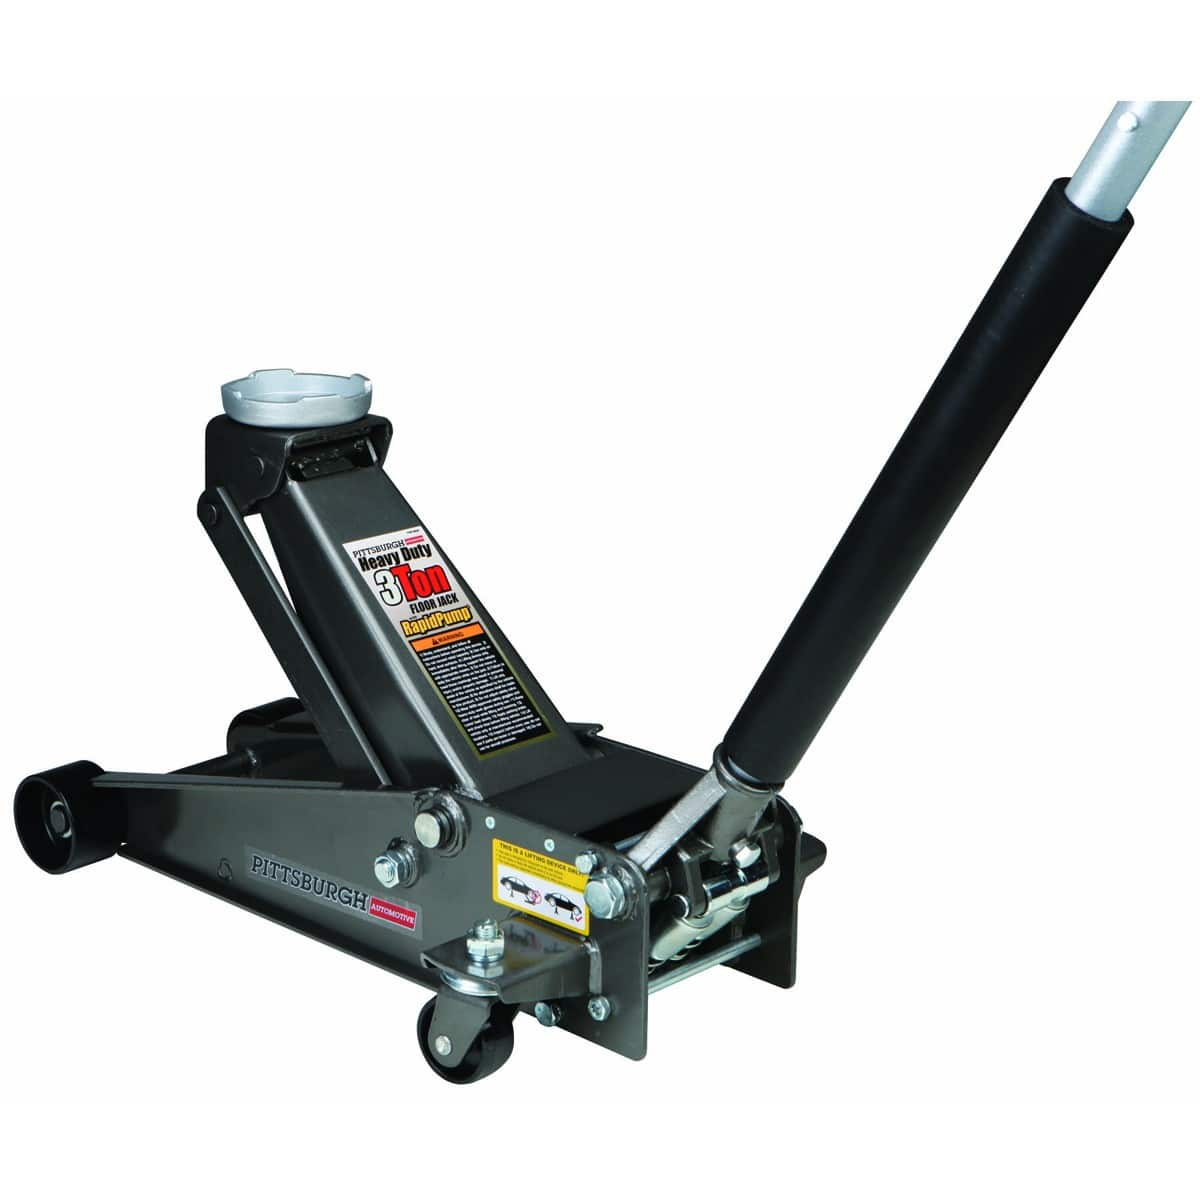 Heavy Duty 3 Ton Floor Jack w/ Rapid Pump - for $69.99 [harborfreight]